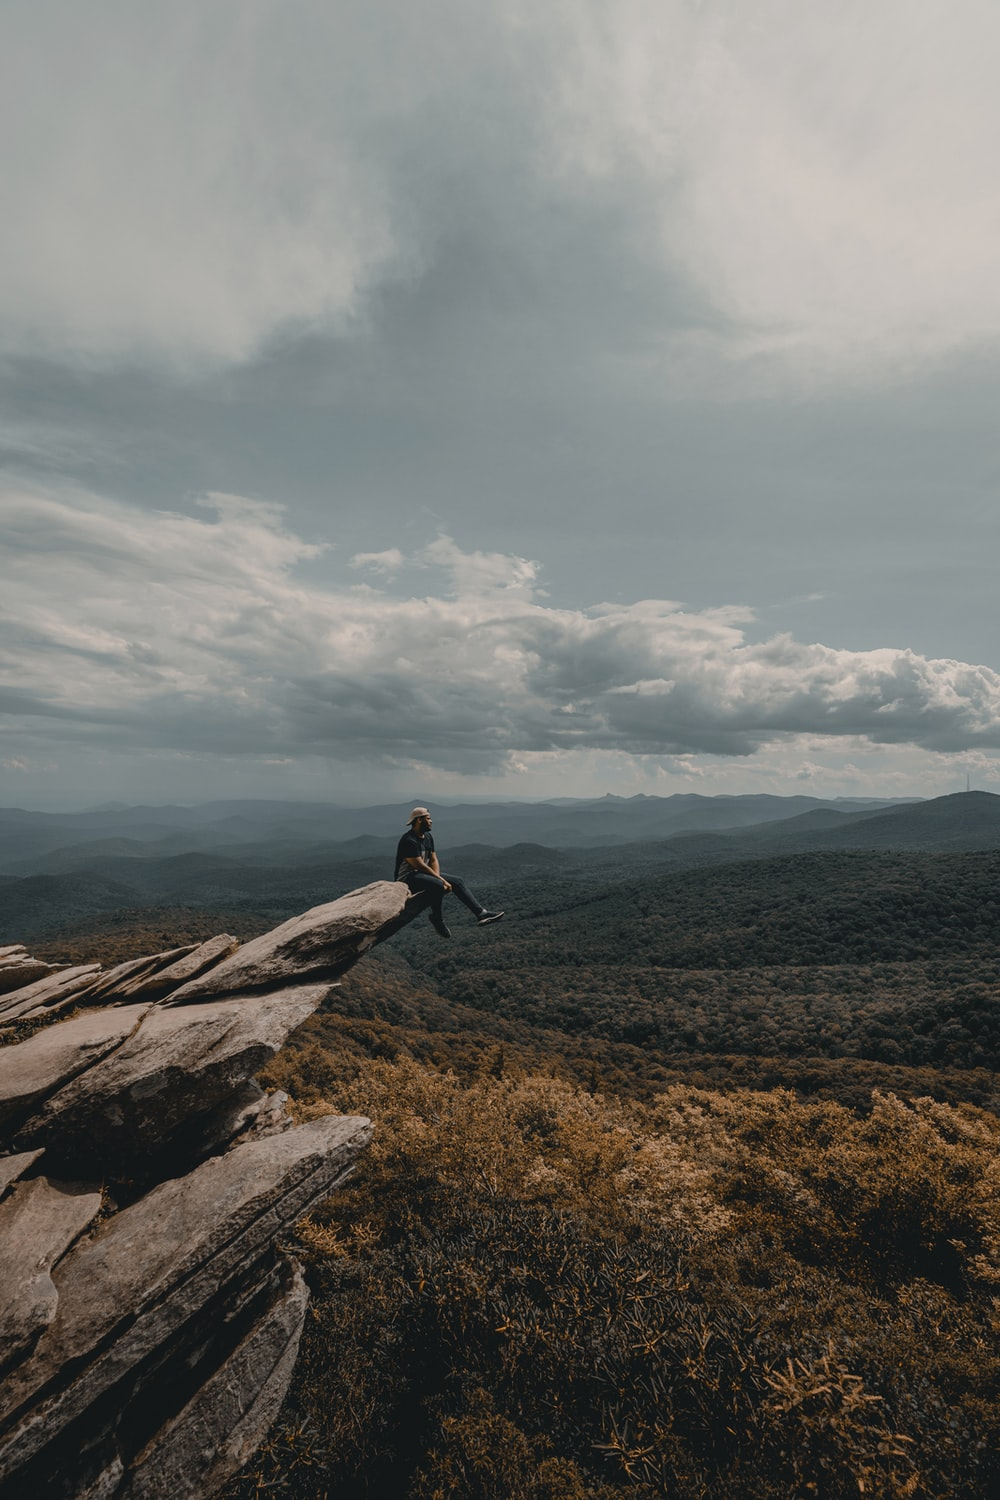 750 Man Alone Pictures Hd Download Free Images On Unsplash